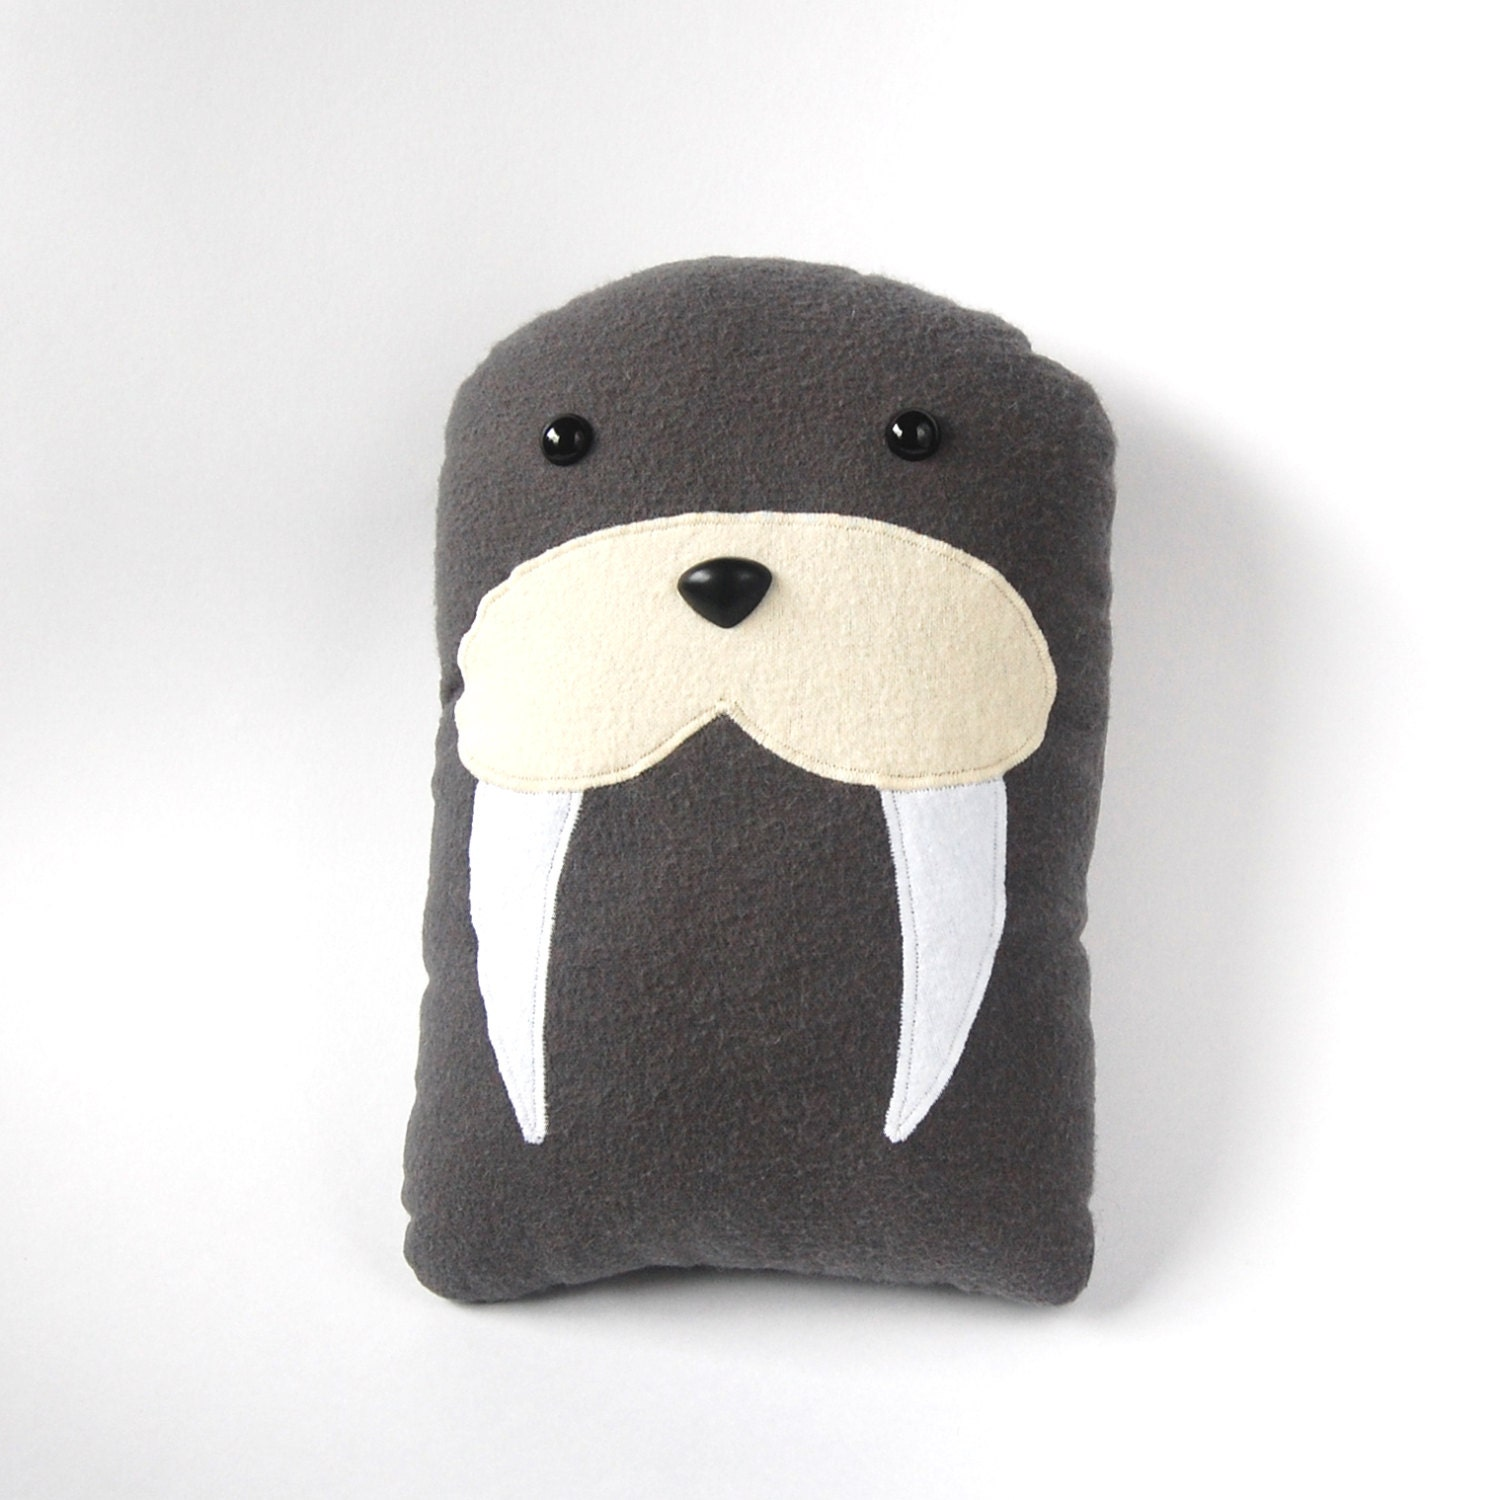 Animal Pillows : Walrus Plush Stuffed Animal Pillow Gray Marine Mammal Sea